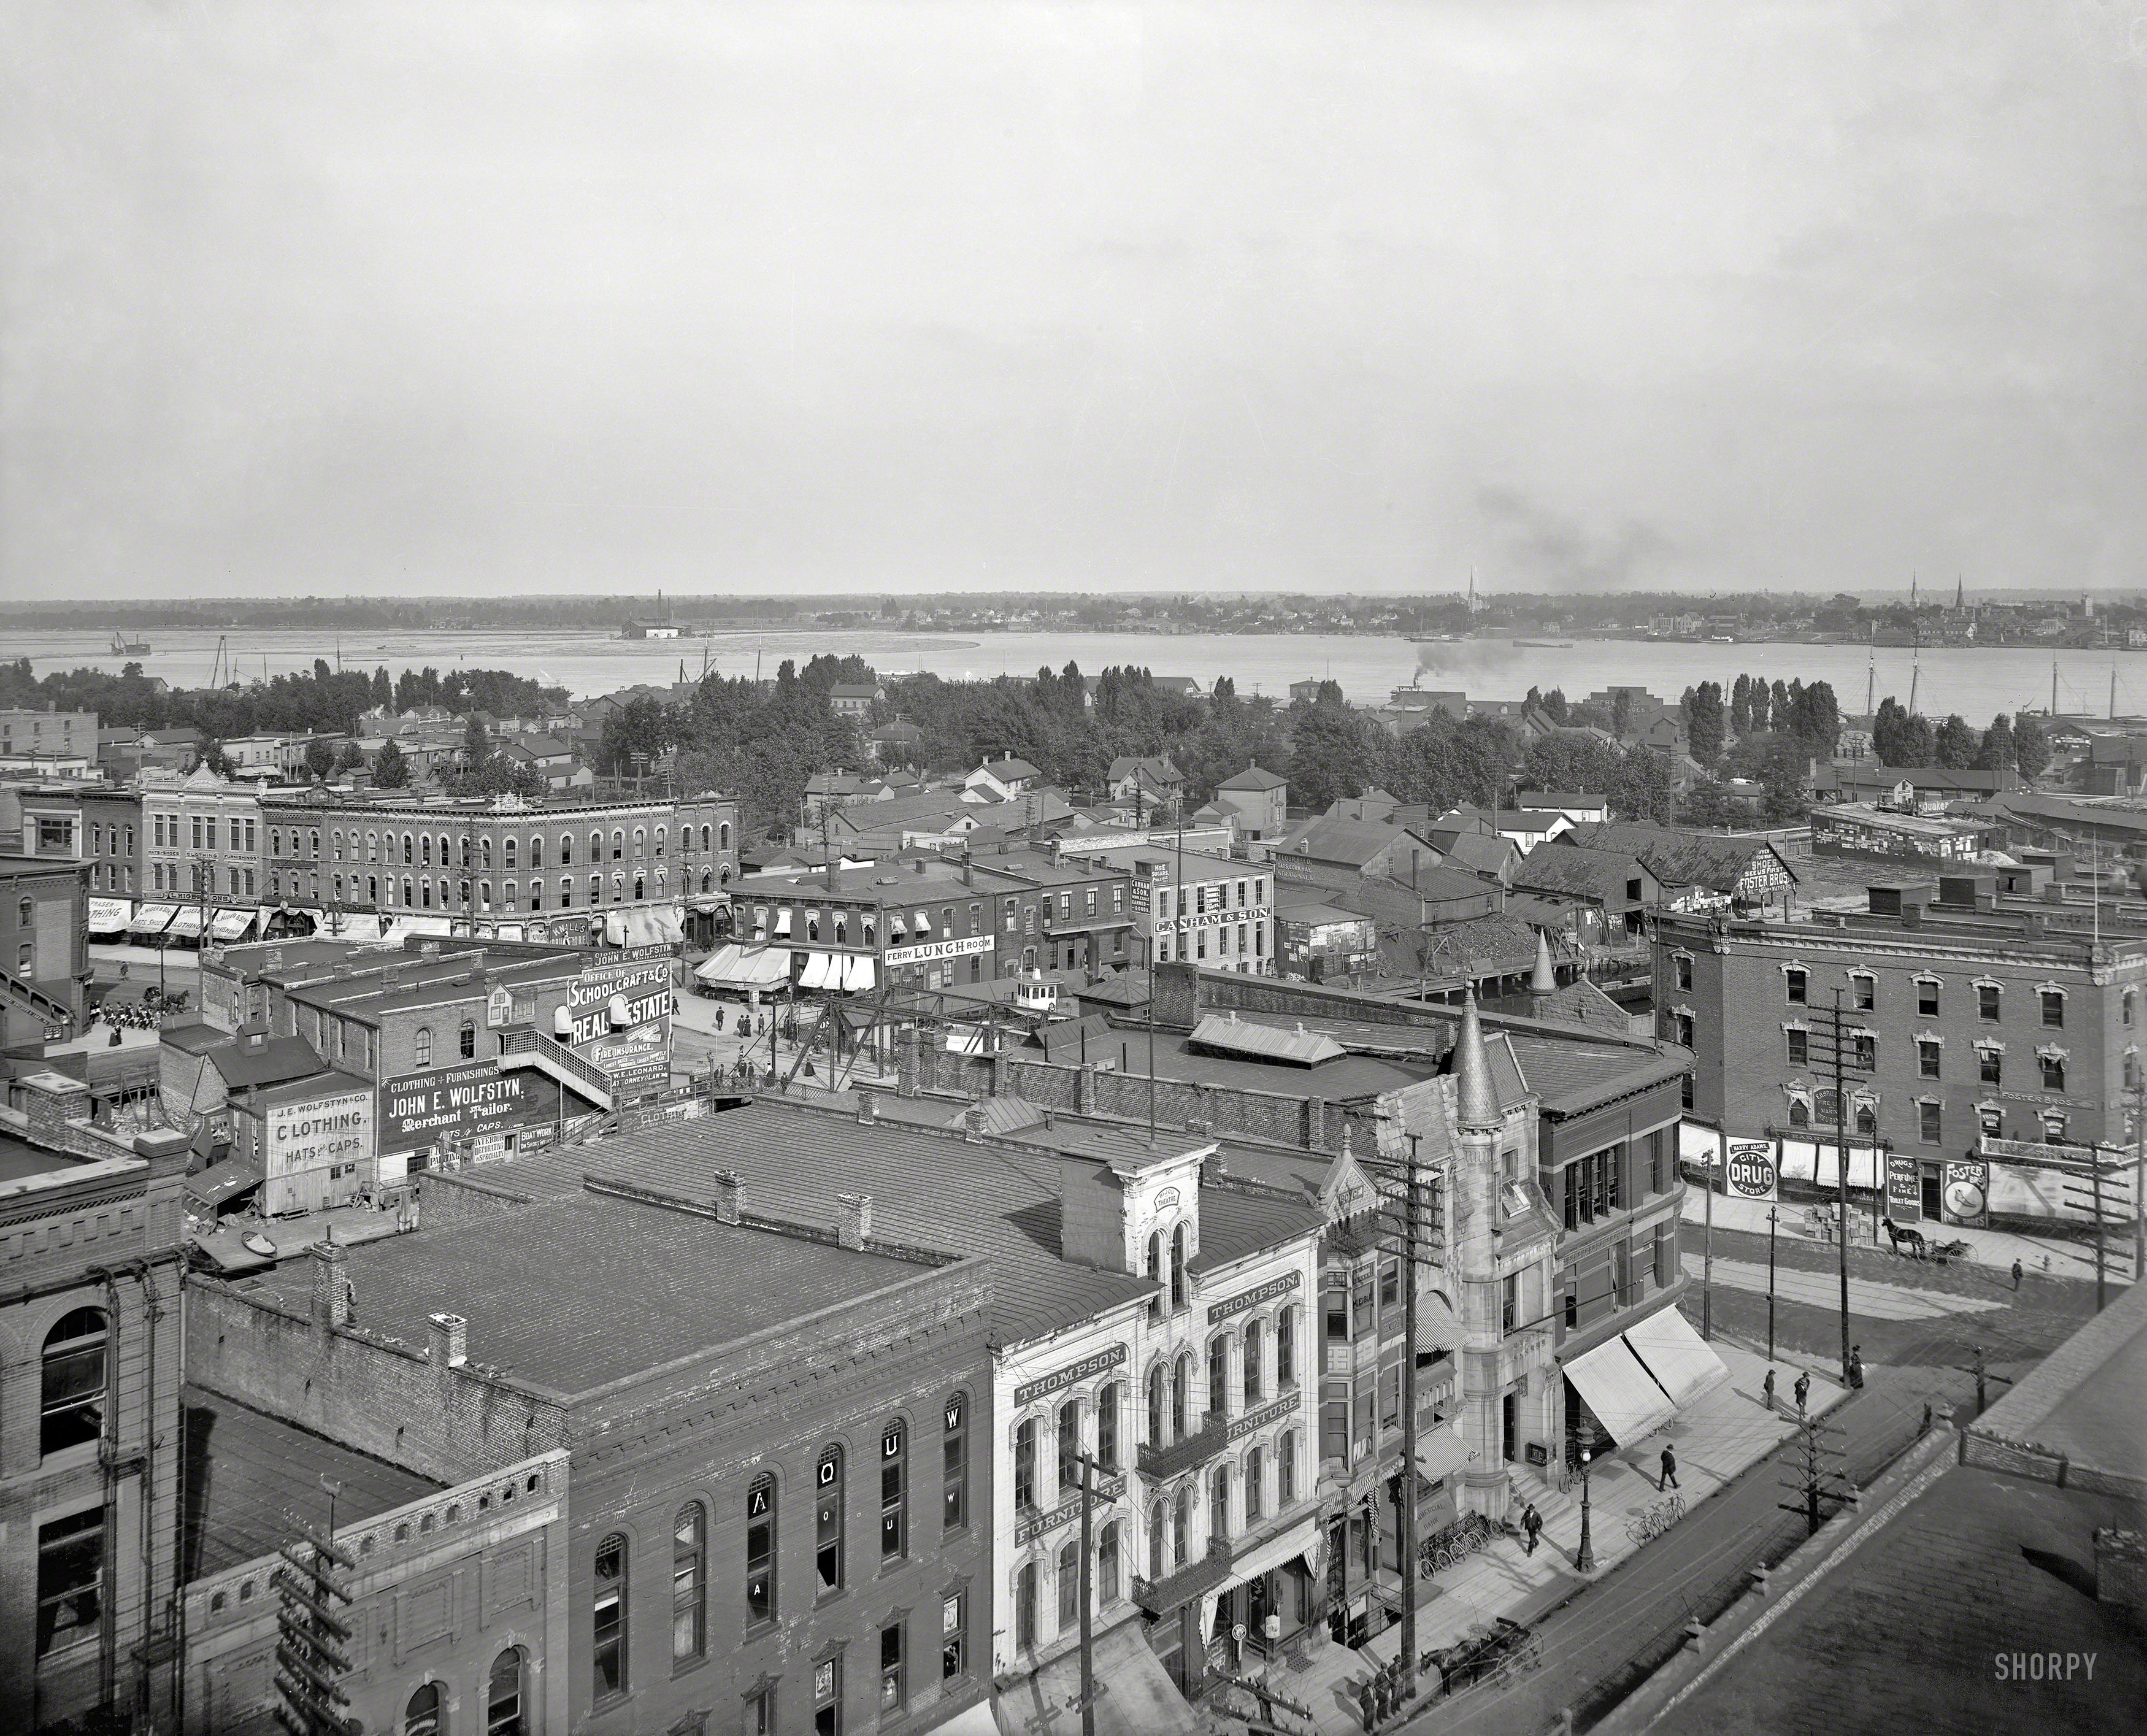 Shorpy Historic Picture Archive Port Huron 1900 High